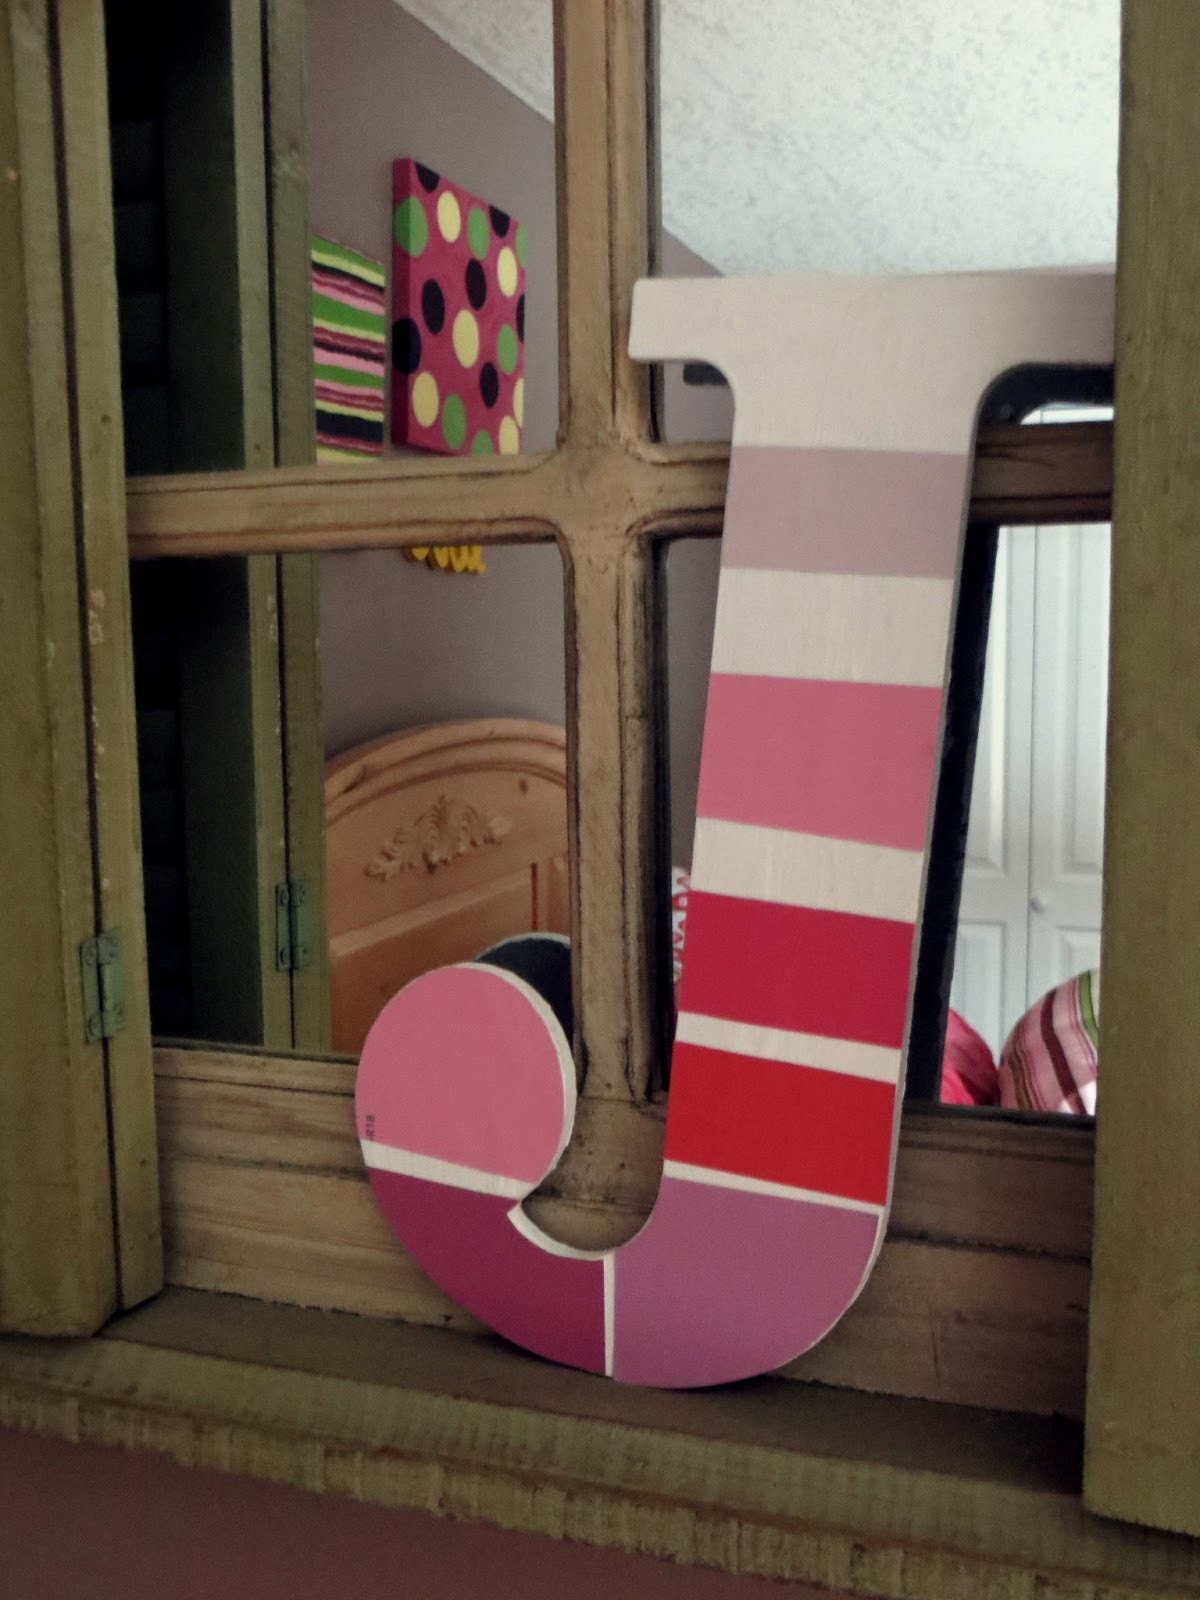 Best ideas about DIY Teenage Girl Room Decorations . Save or Pin Namely Original DIY Teen Girl Room Decor Now.